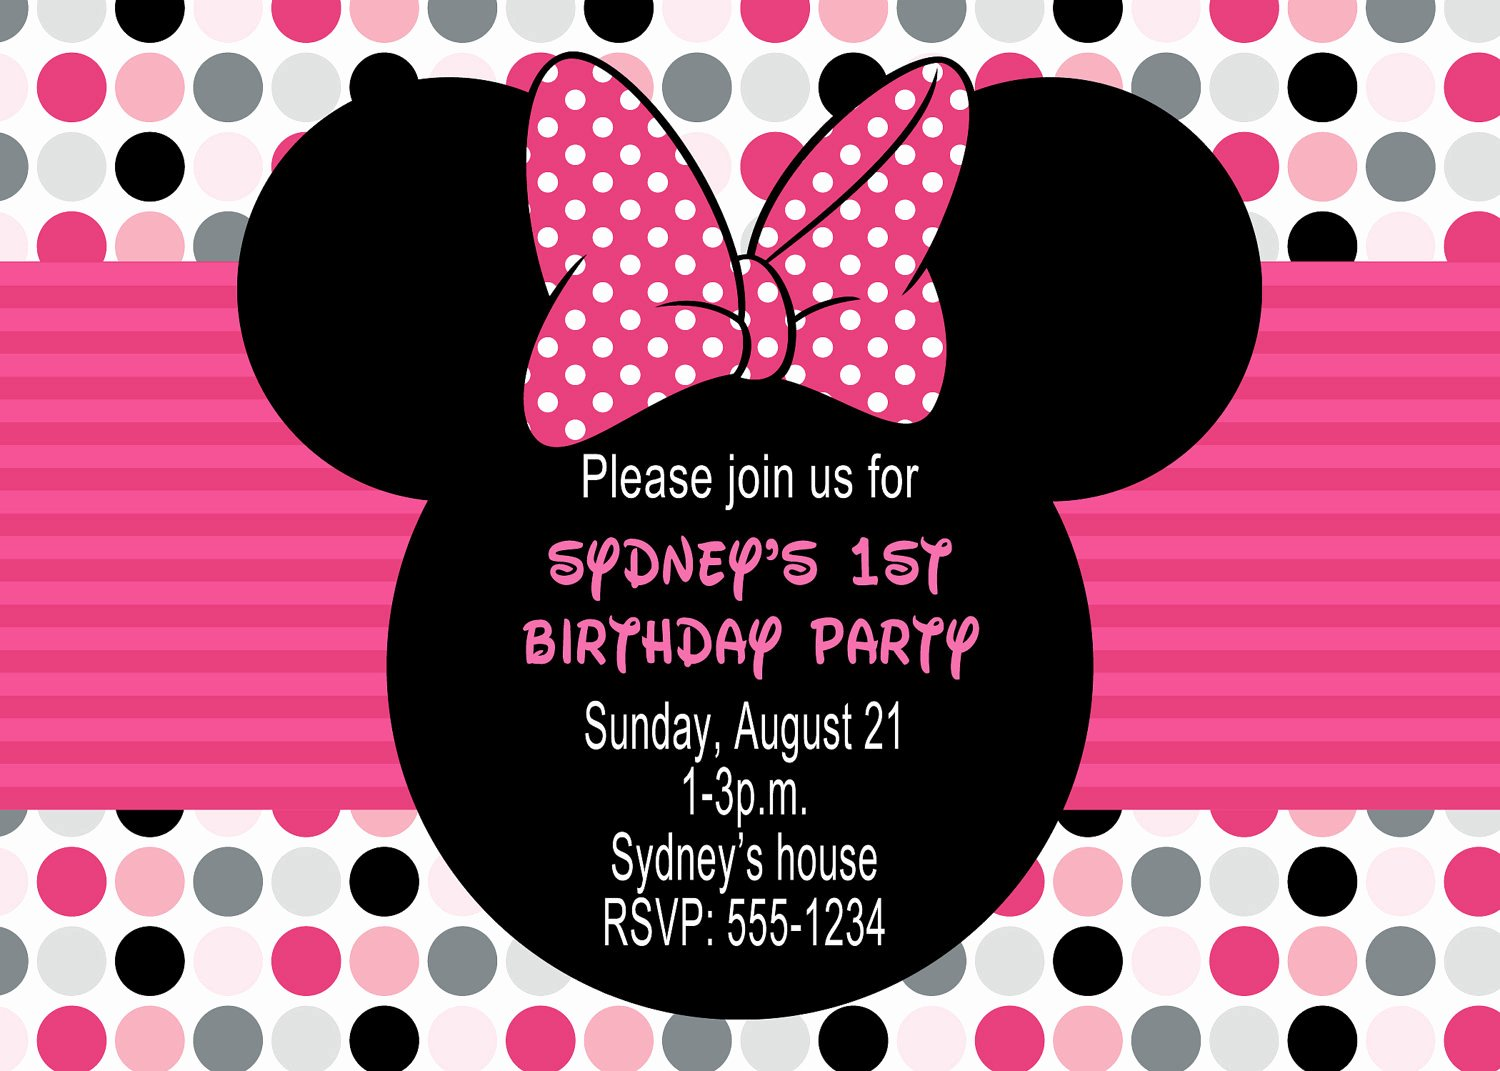 Minnie Mouse Party Invitations Inspirational Minnie Mouse Birthday Party Invitations